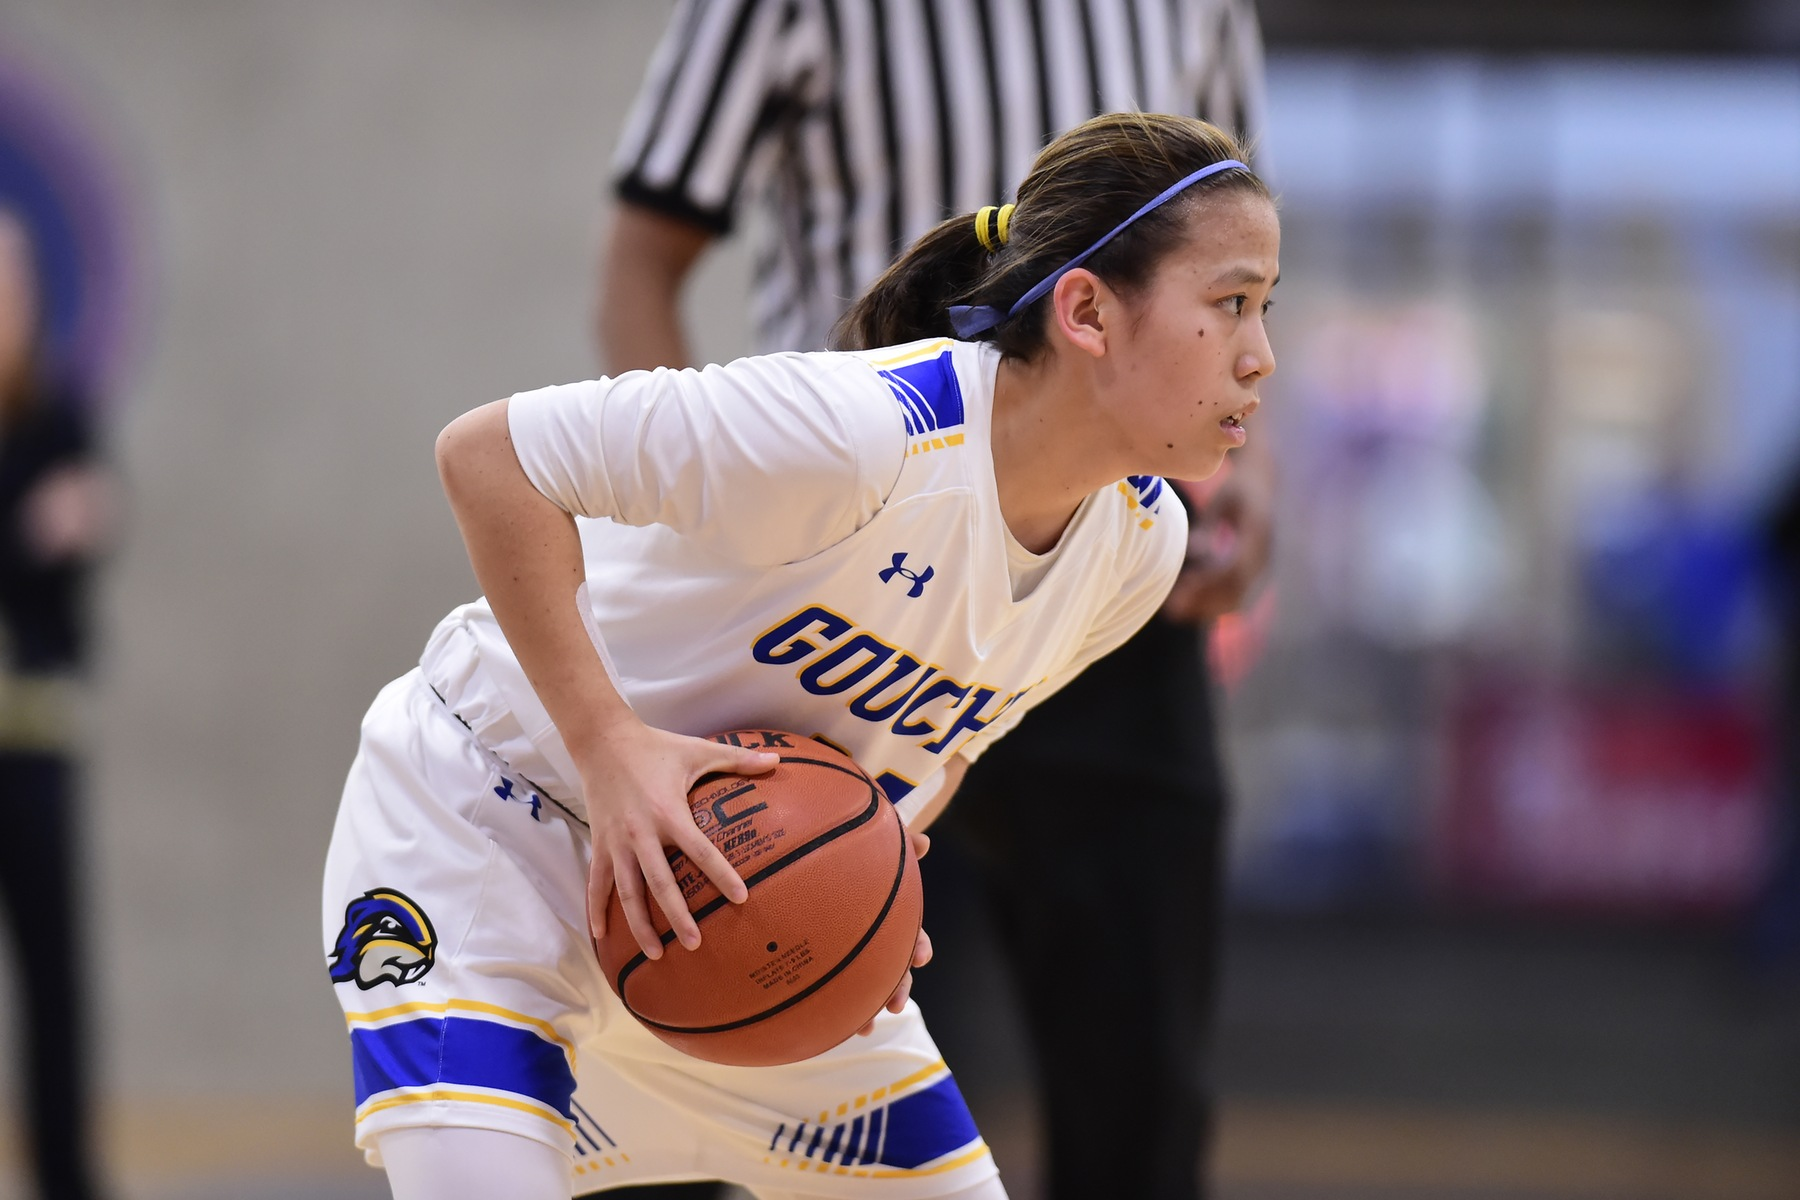 Women's Basketball Coach Andrea Preston Captures First Goucher Win